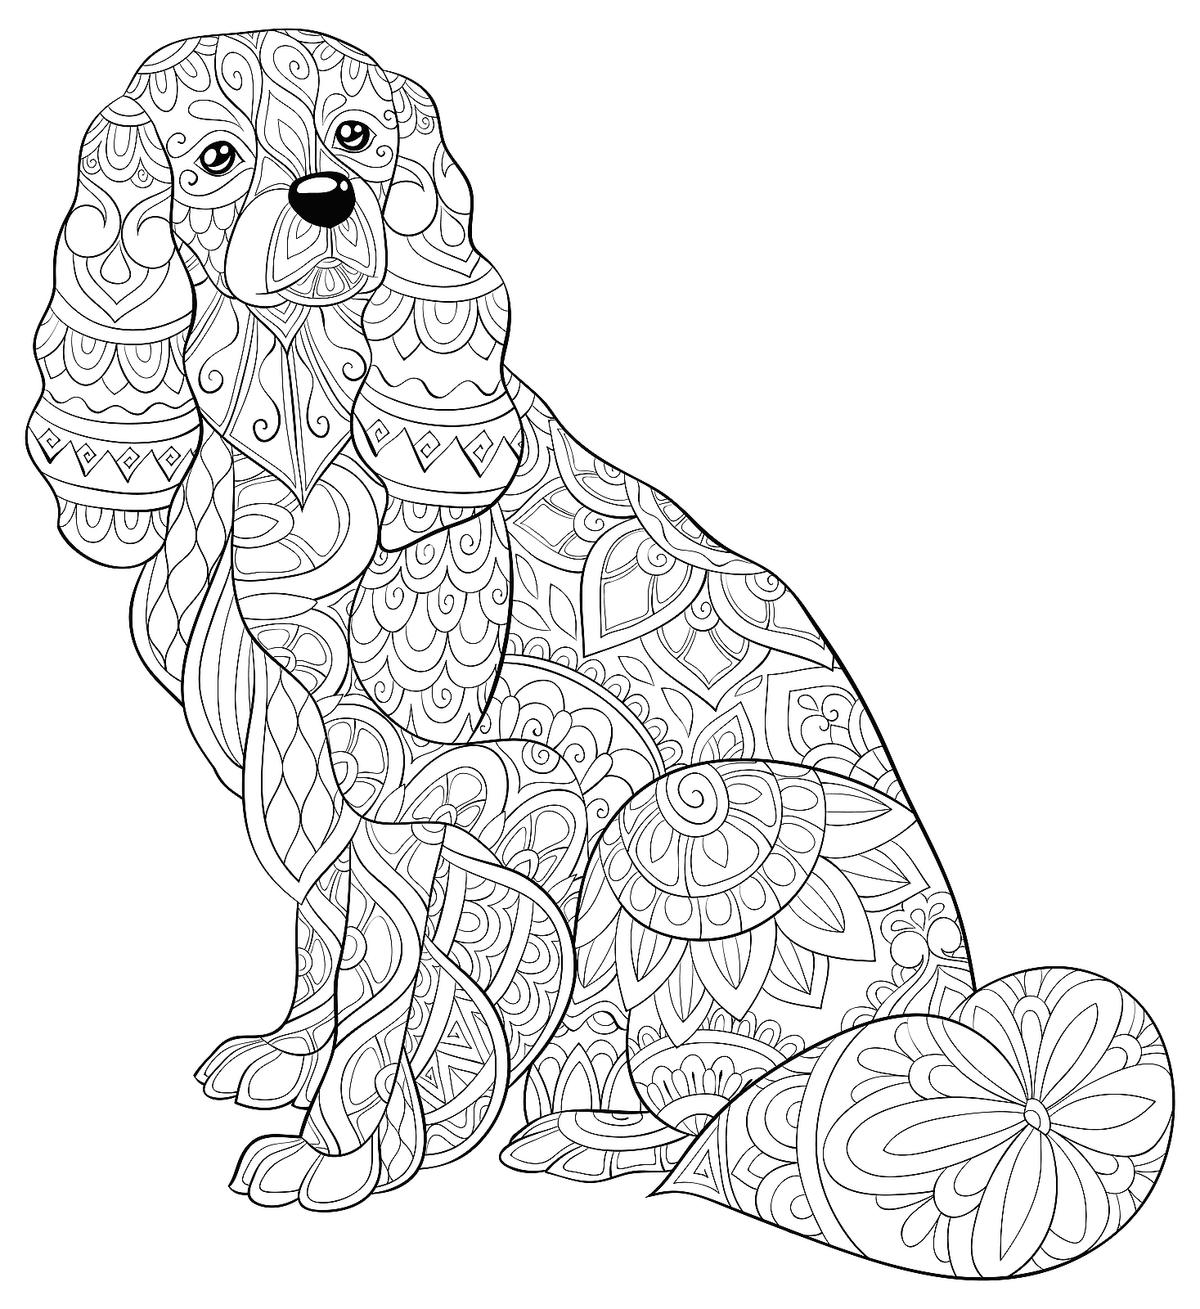 coloring pages to print dogs puppy coloring pages best coloring pages for kids dogs coloring pages print to